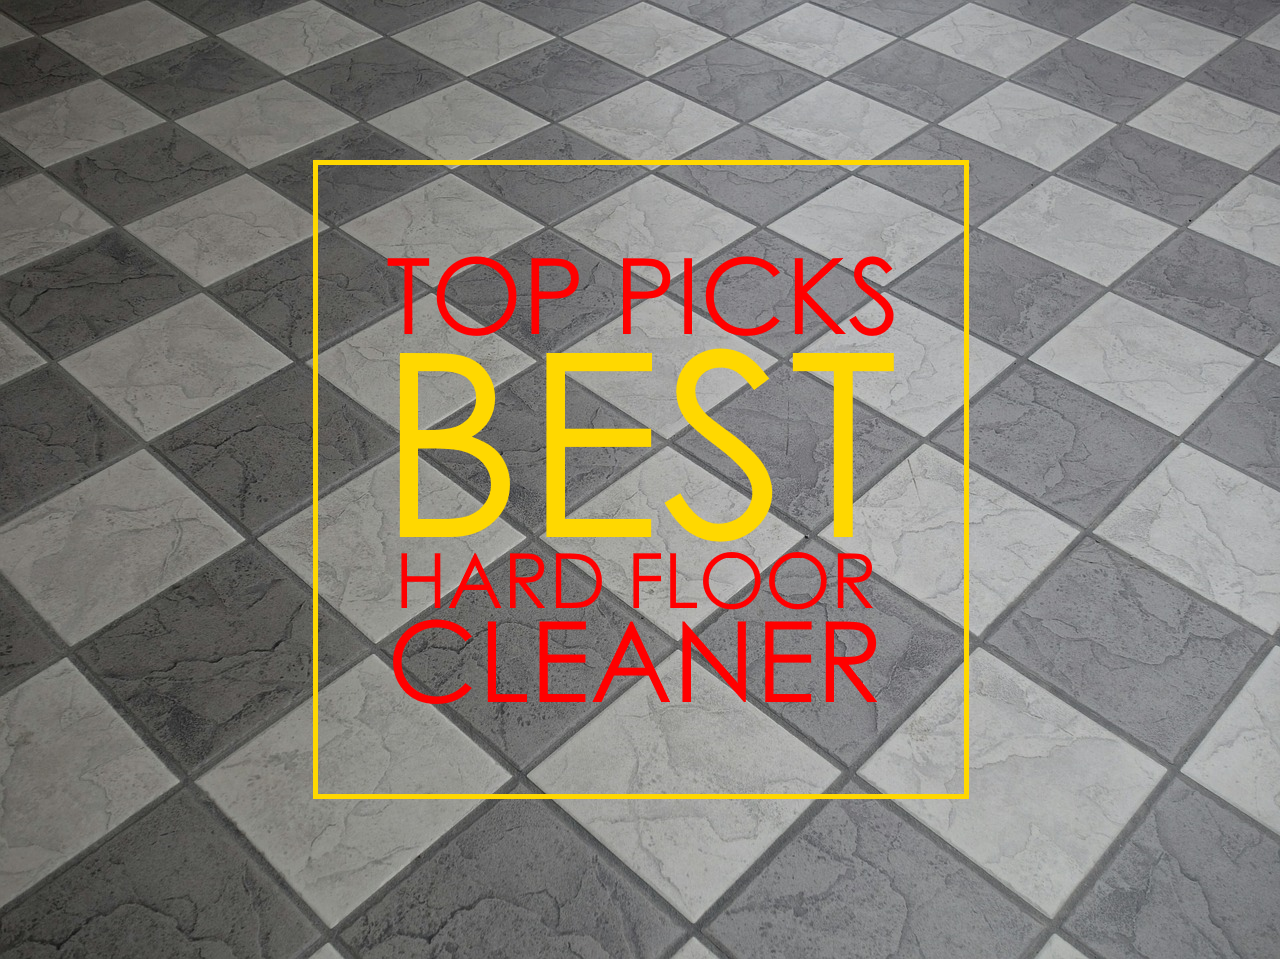 What Is The Best Hard Floor Cleaner Top Picks Kleen Floor